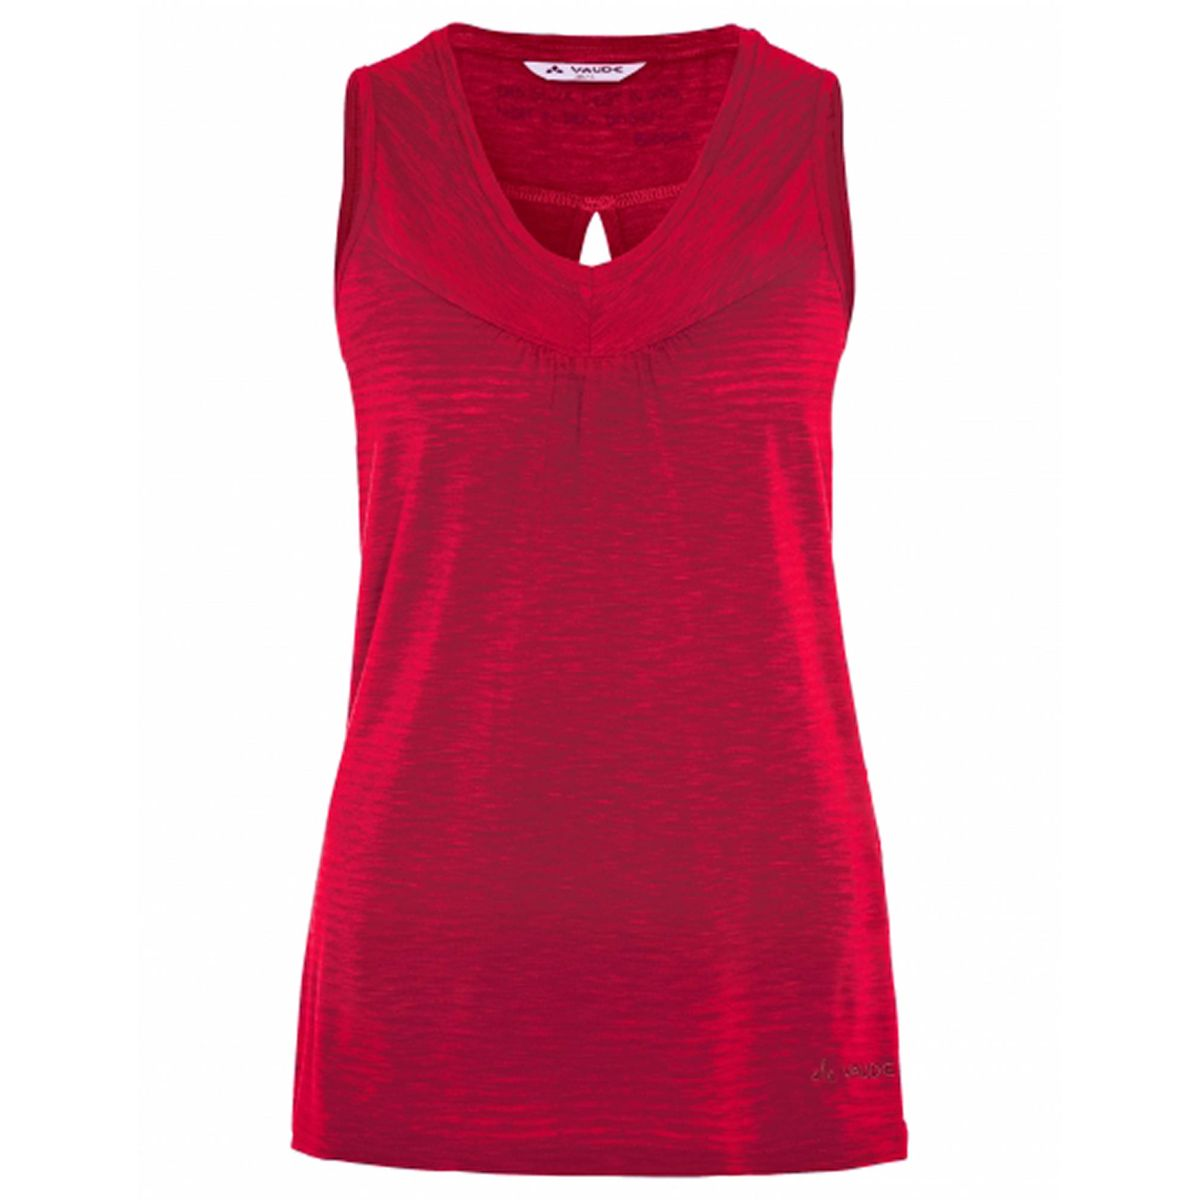 SKOMER women's top